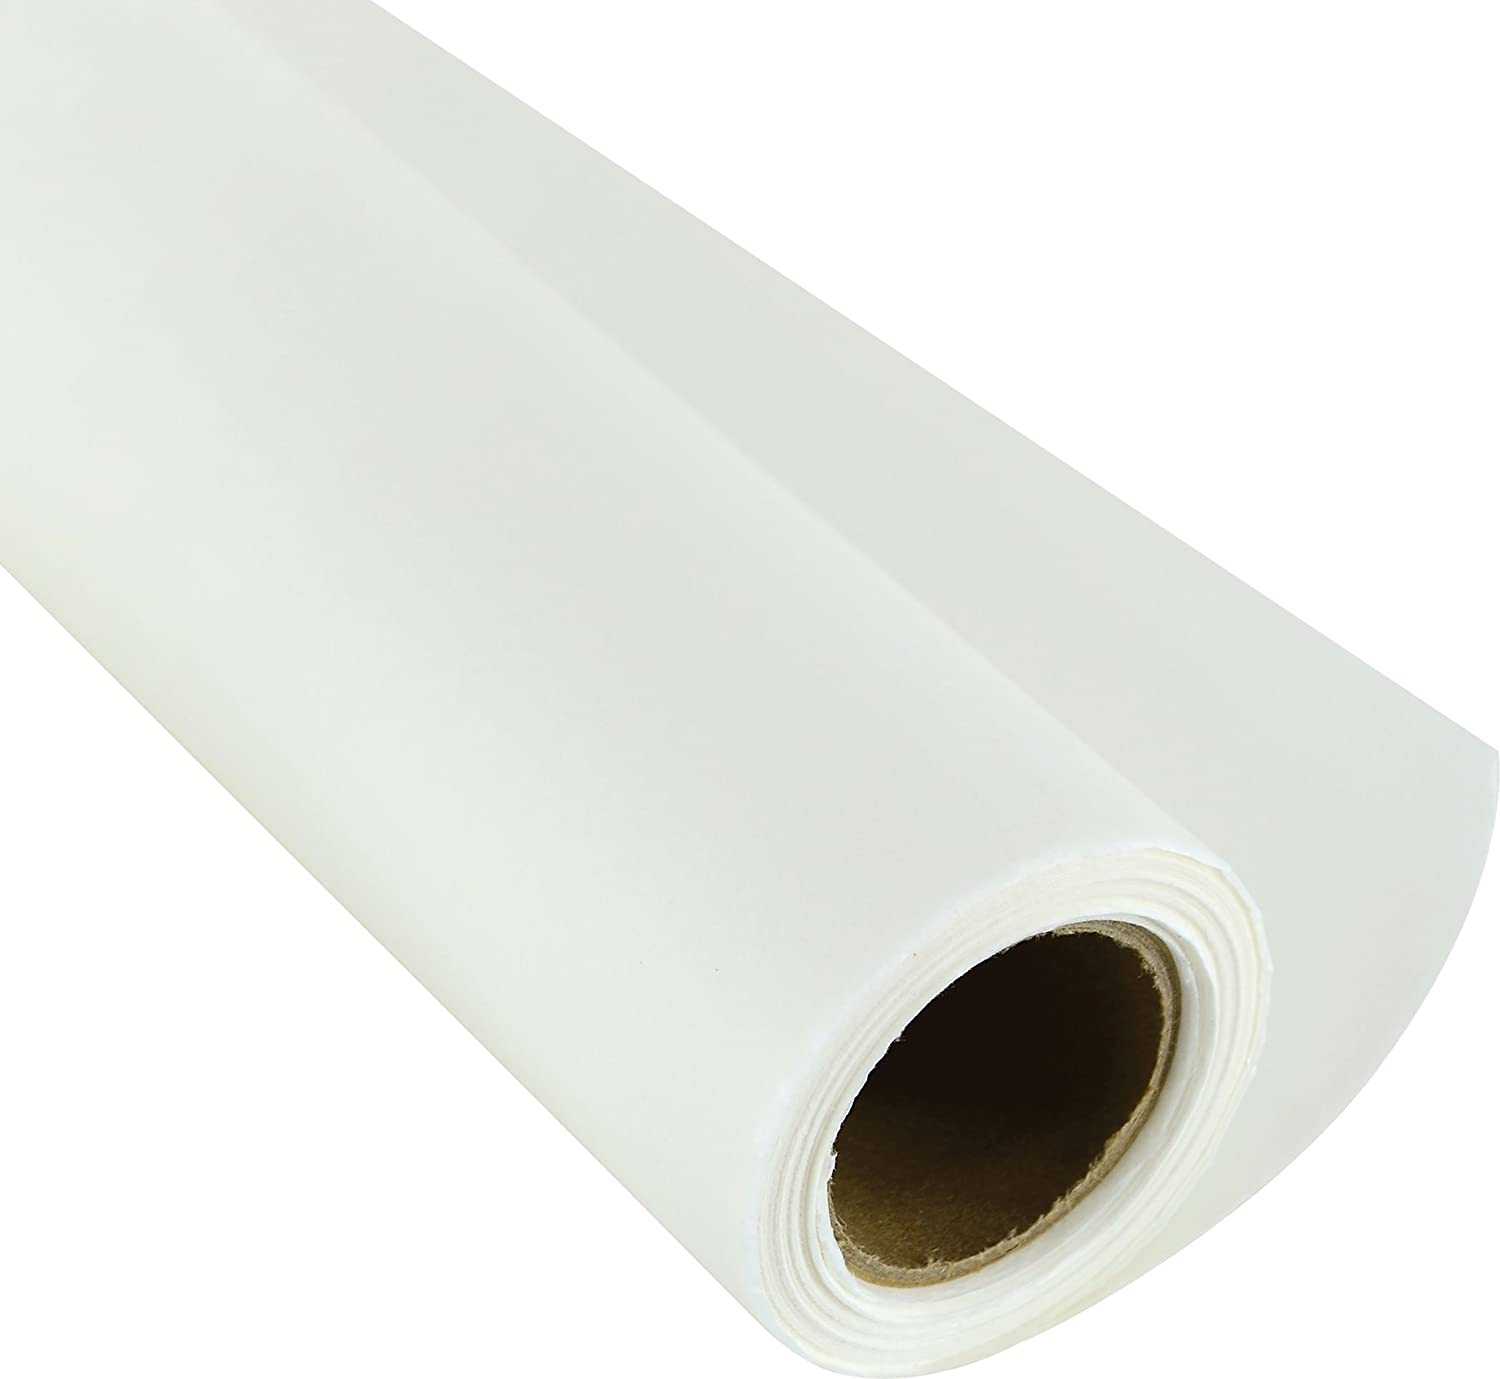 Bee Paper White Sketch and Trace Roll, 12-Inch by 20-Yards 515R-2012